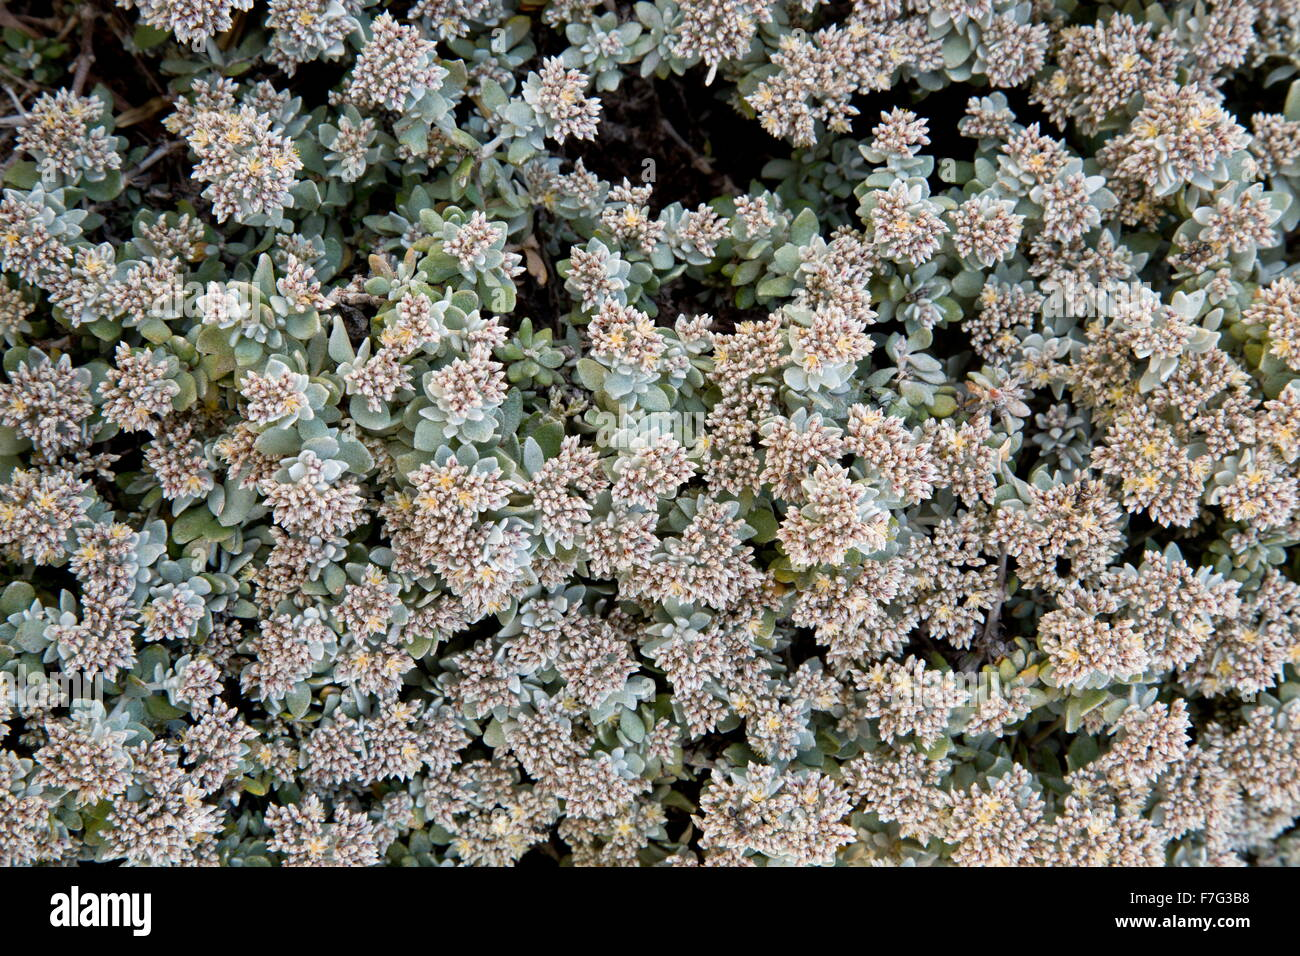 Polycarpaea nivea in flower. Good for bees. Lanzarote - Stock Image